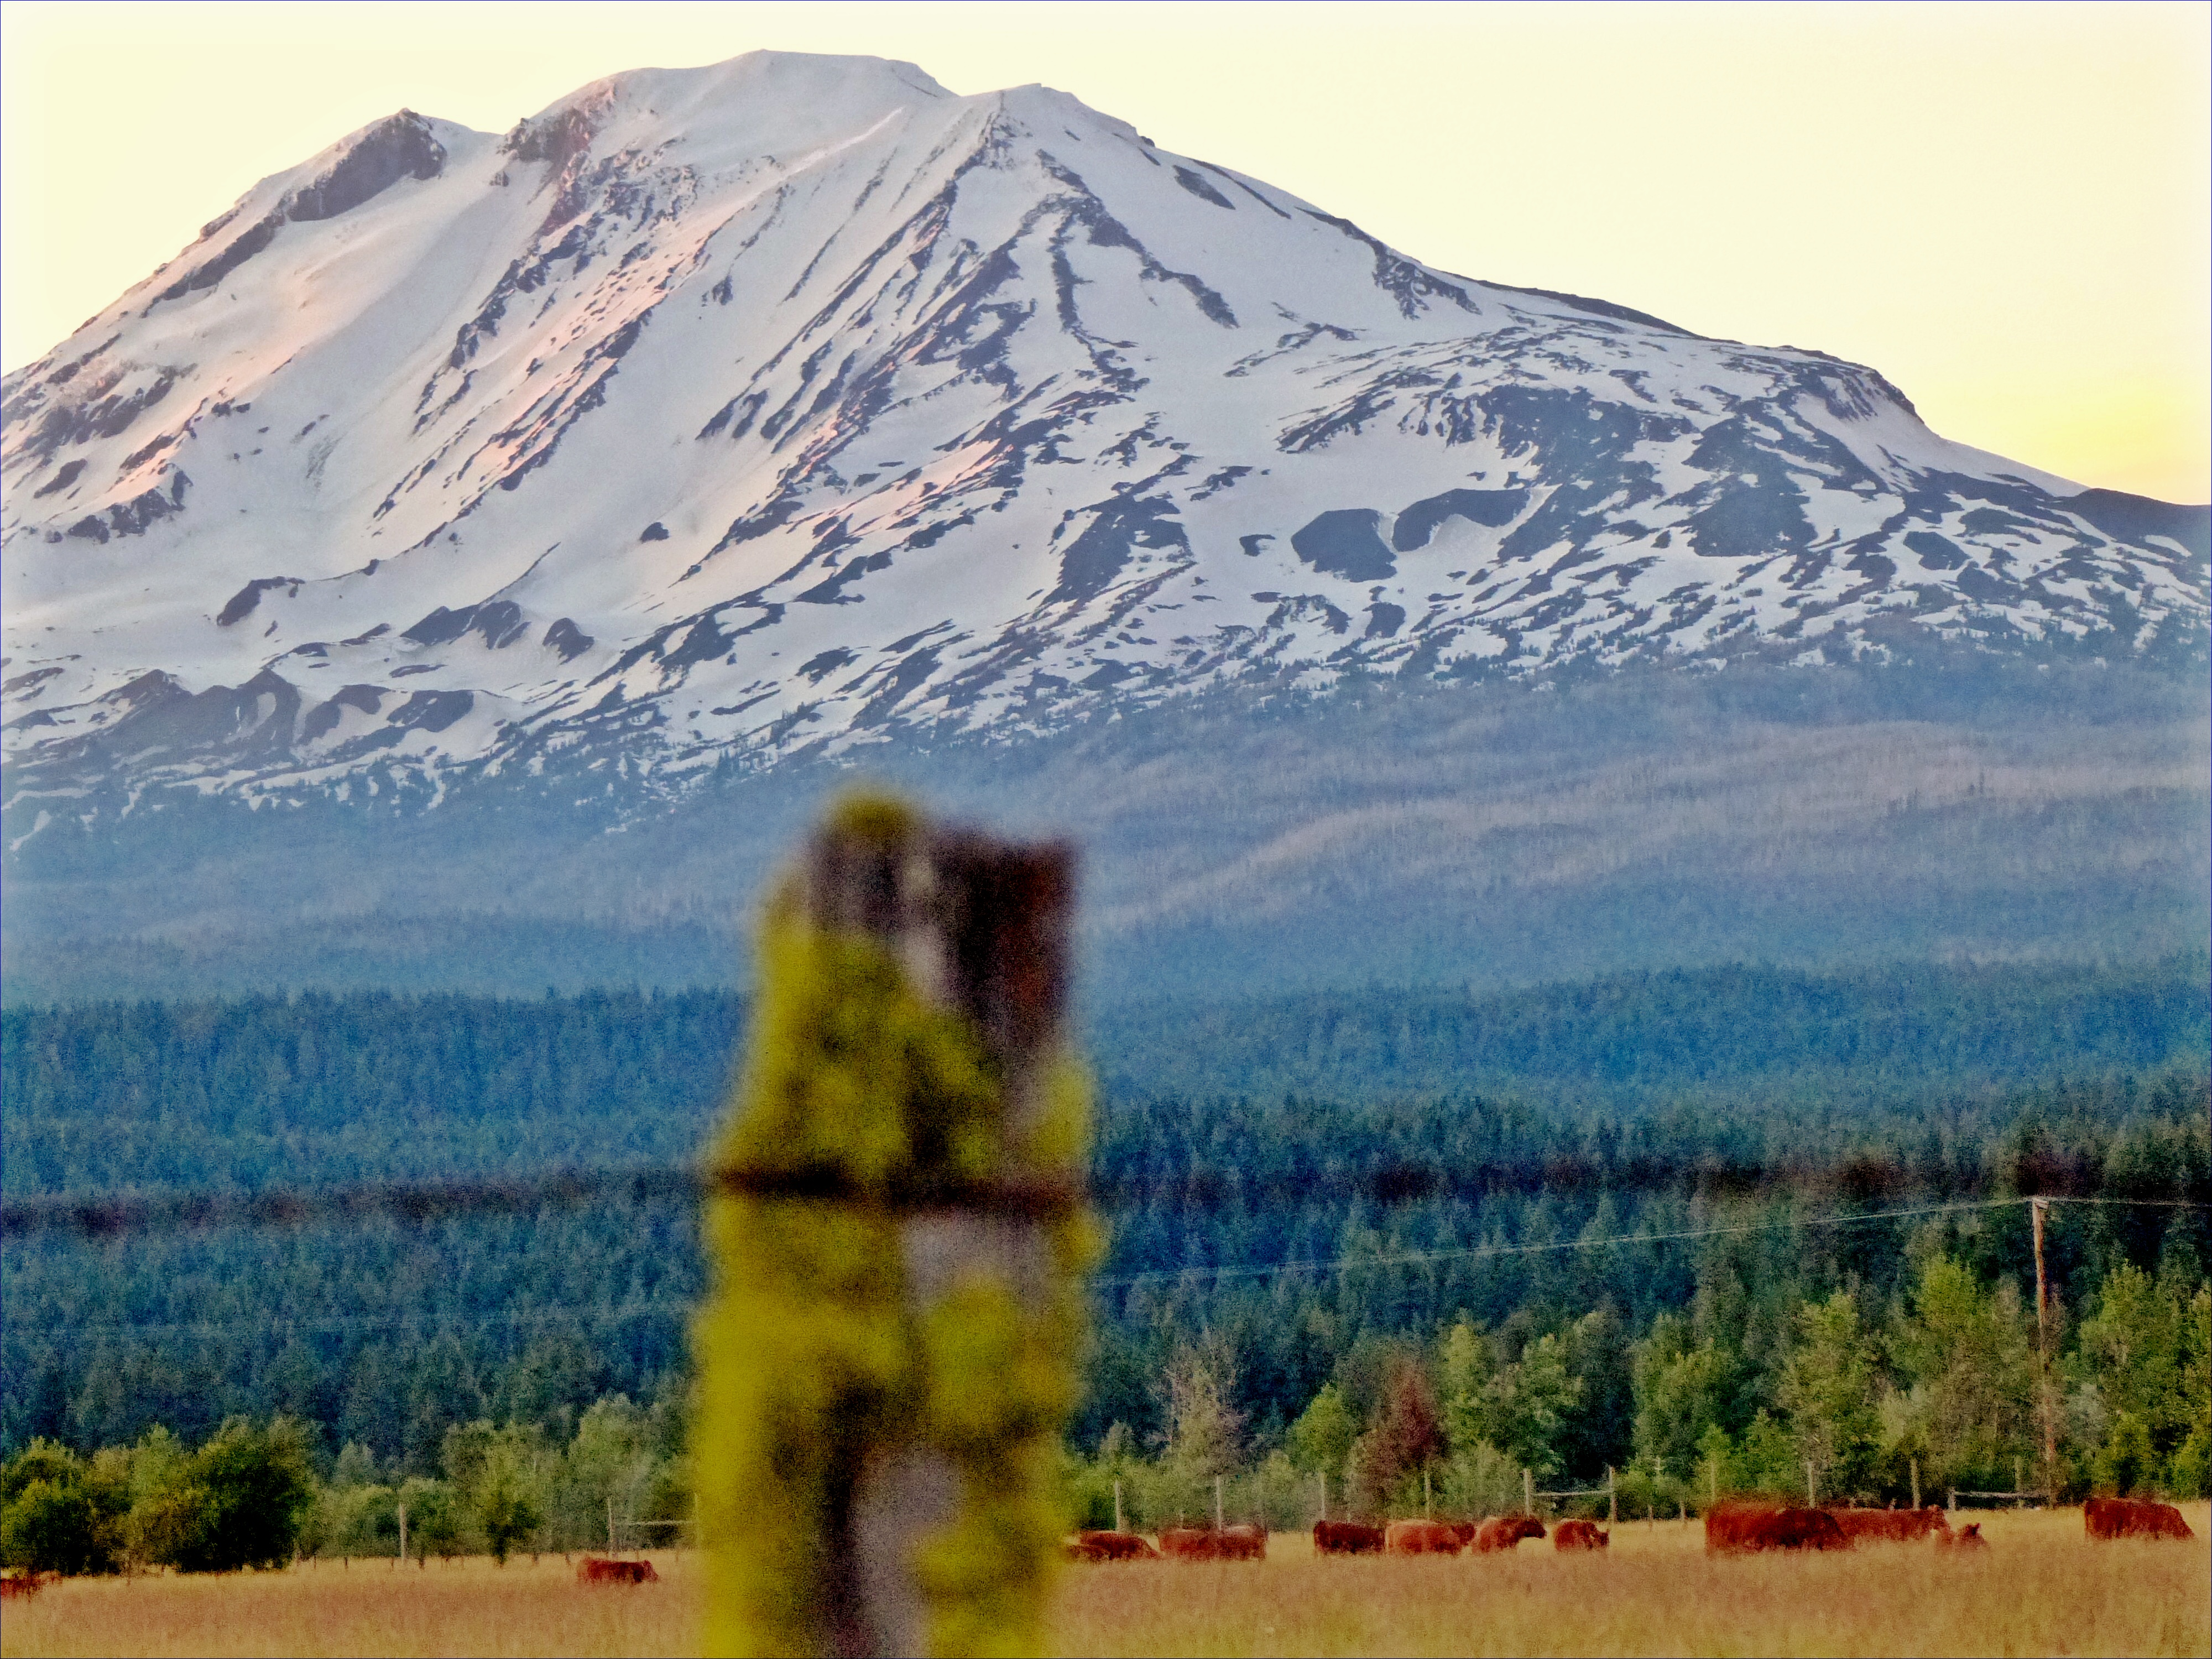 Mt Adams from Trout Lake, WA